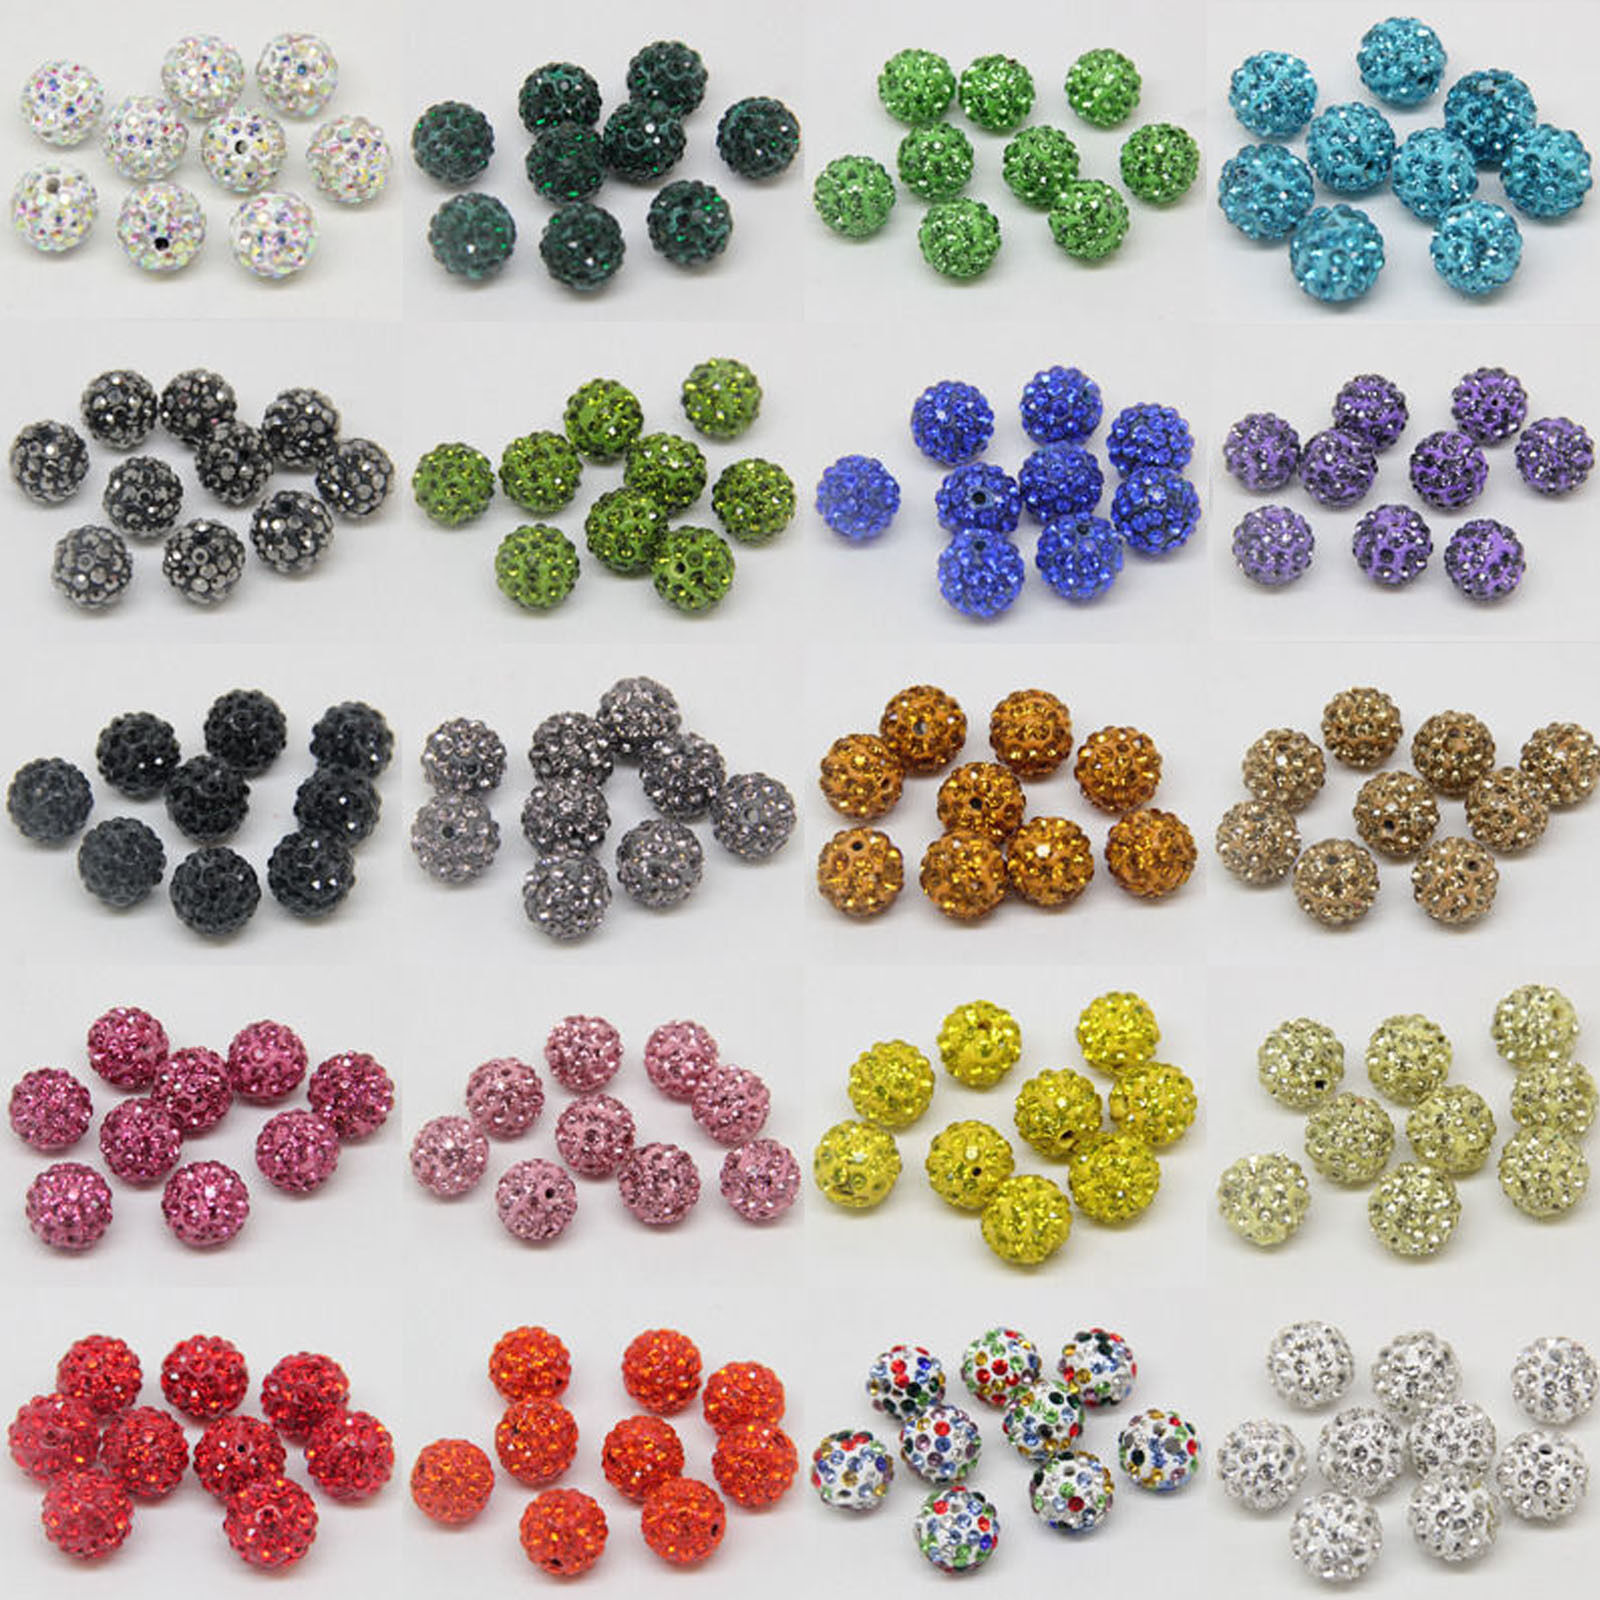 authorized bead asp beadcraft swarovski stones cys for wholesale beads of prices competitive elements an creative findings packs wide and retailer very a pendants at is crystal has range factory including